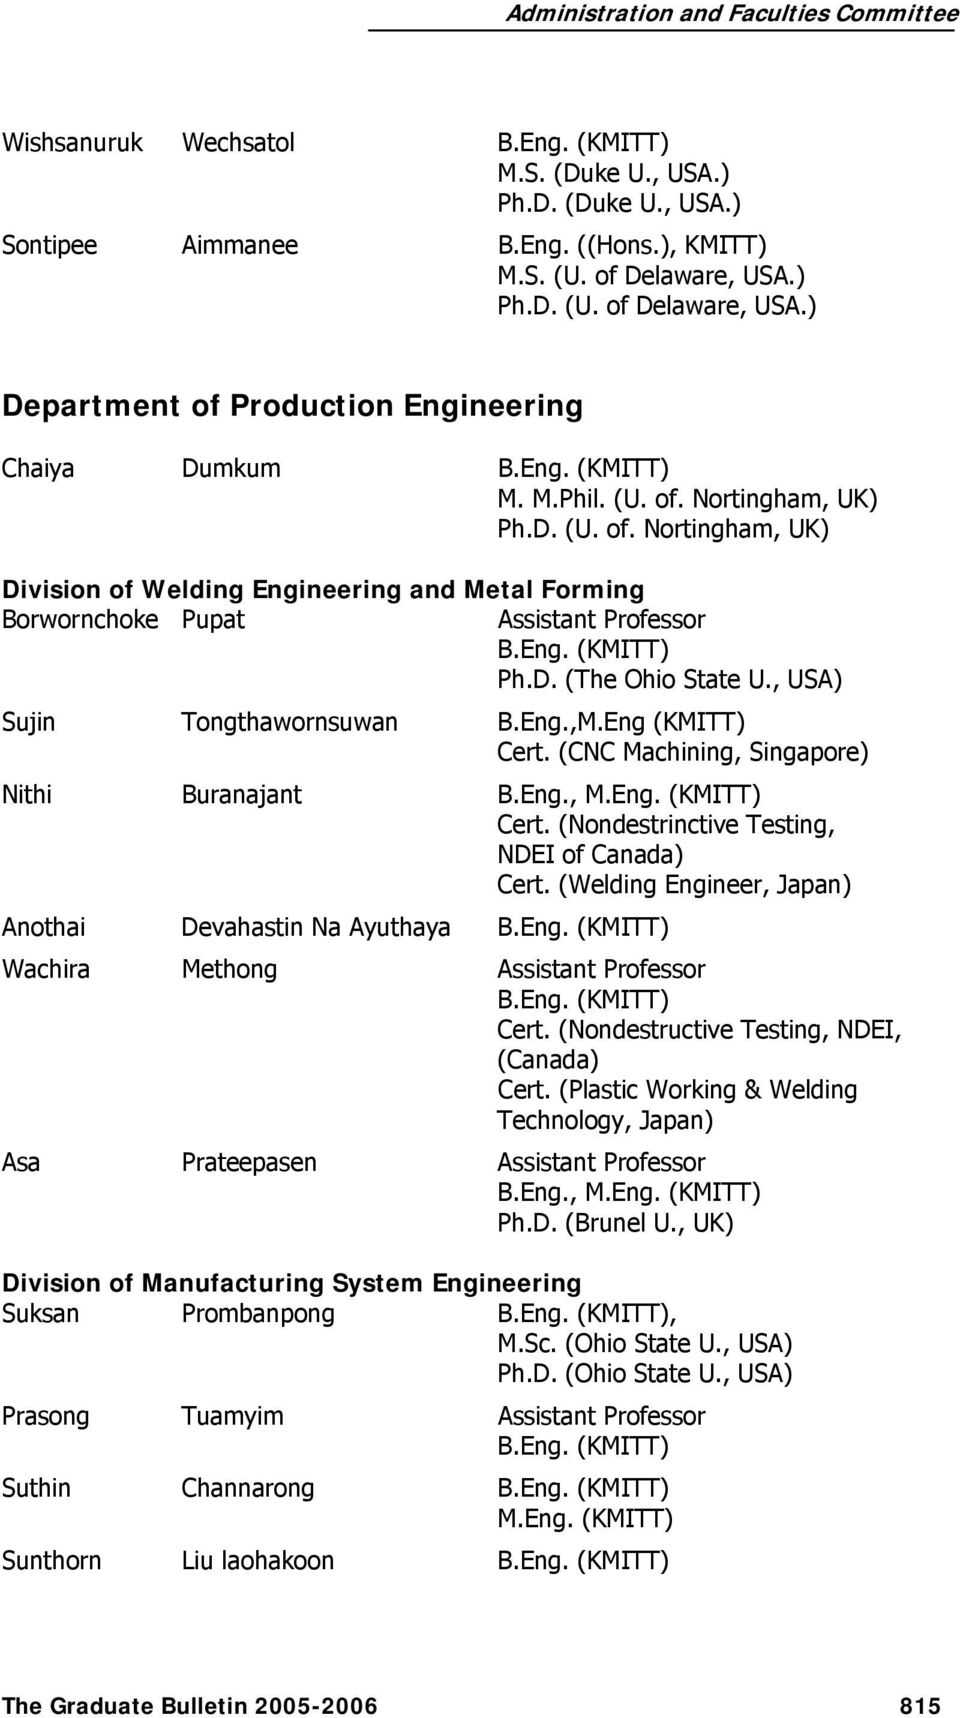 ACADEMIC STAFF FACULTY OF ENGINEERING - PDF